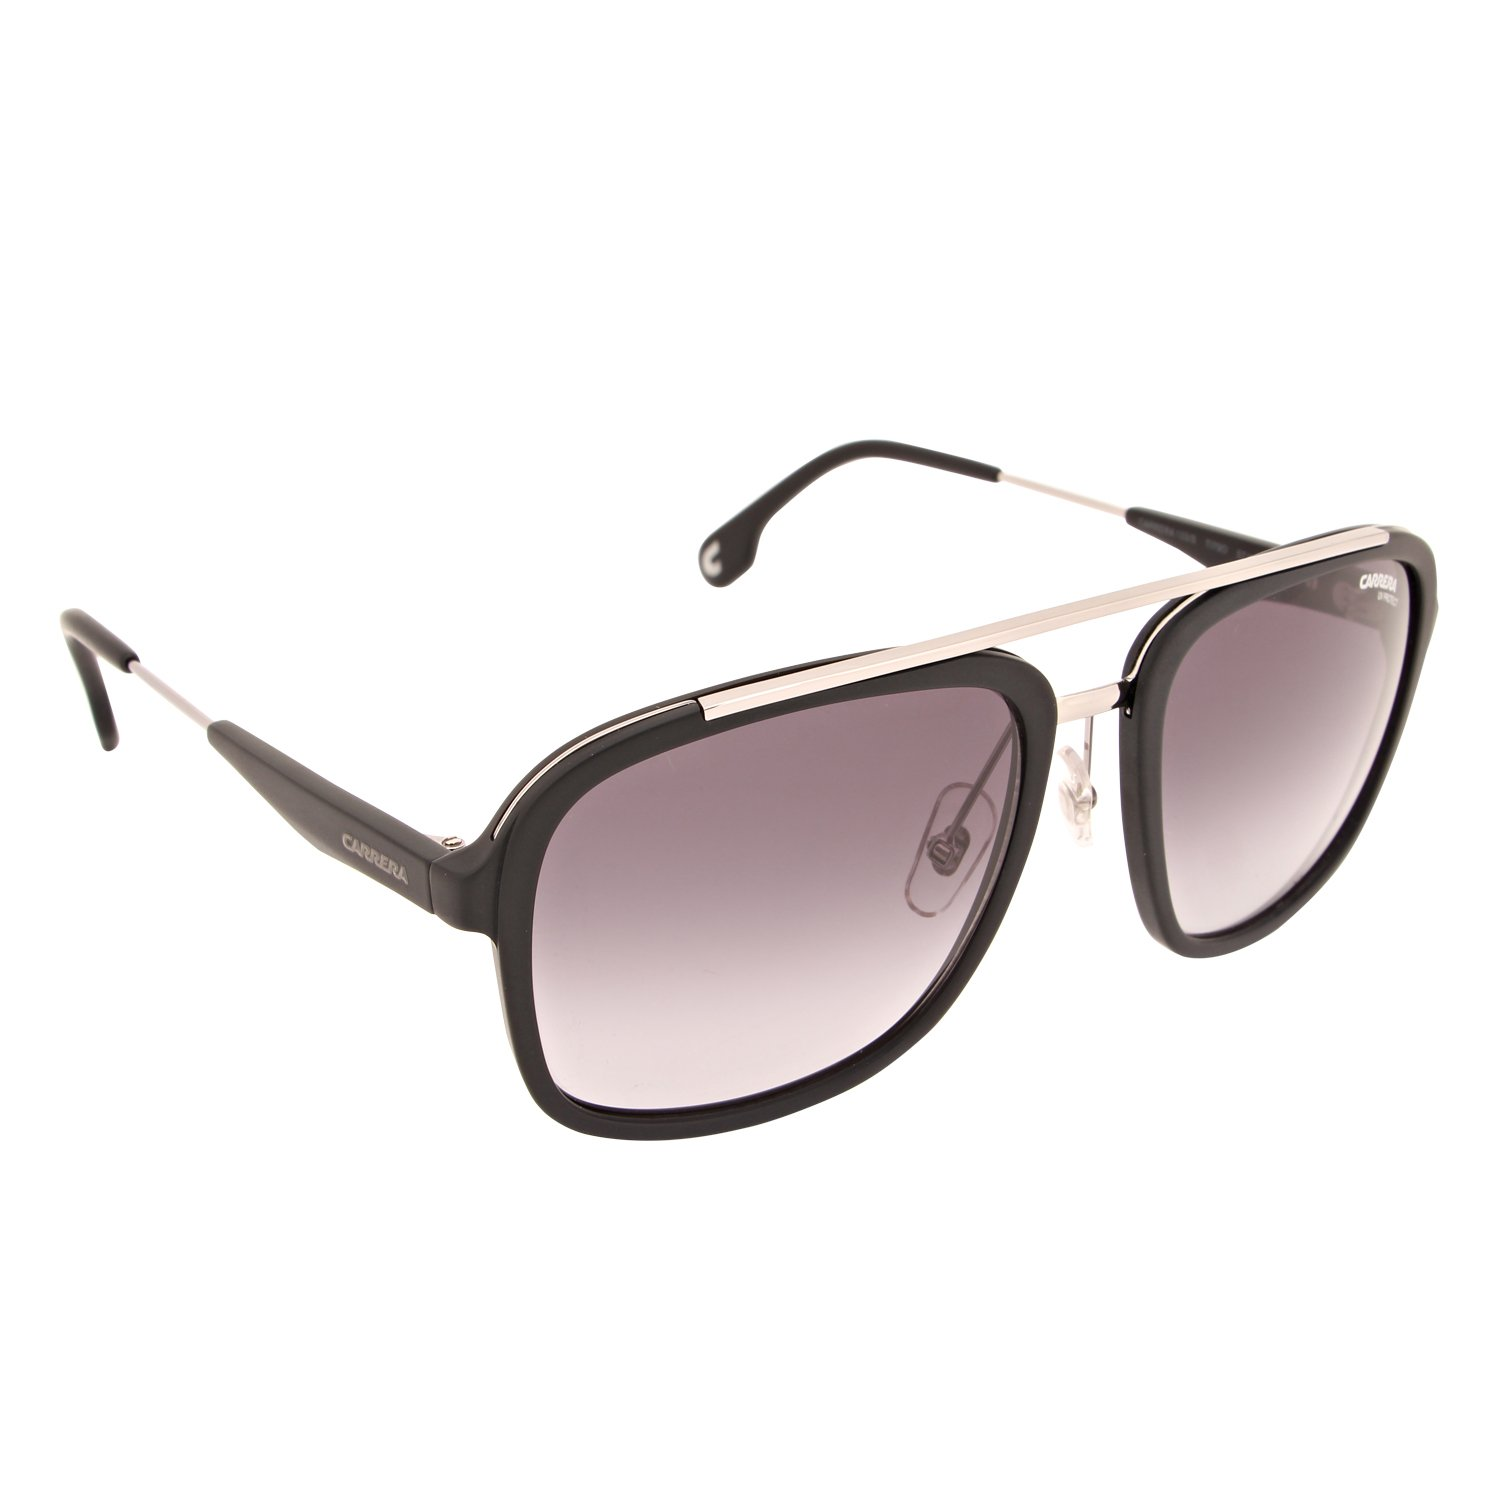 New Unisex Sunglasses Carrera CARRERA 133/S TI7/9O B01MR88BZH グレー, クラリス 7a033aab